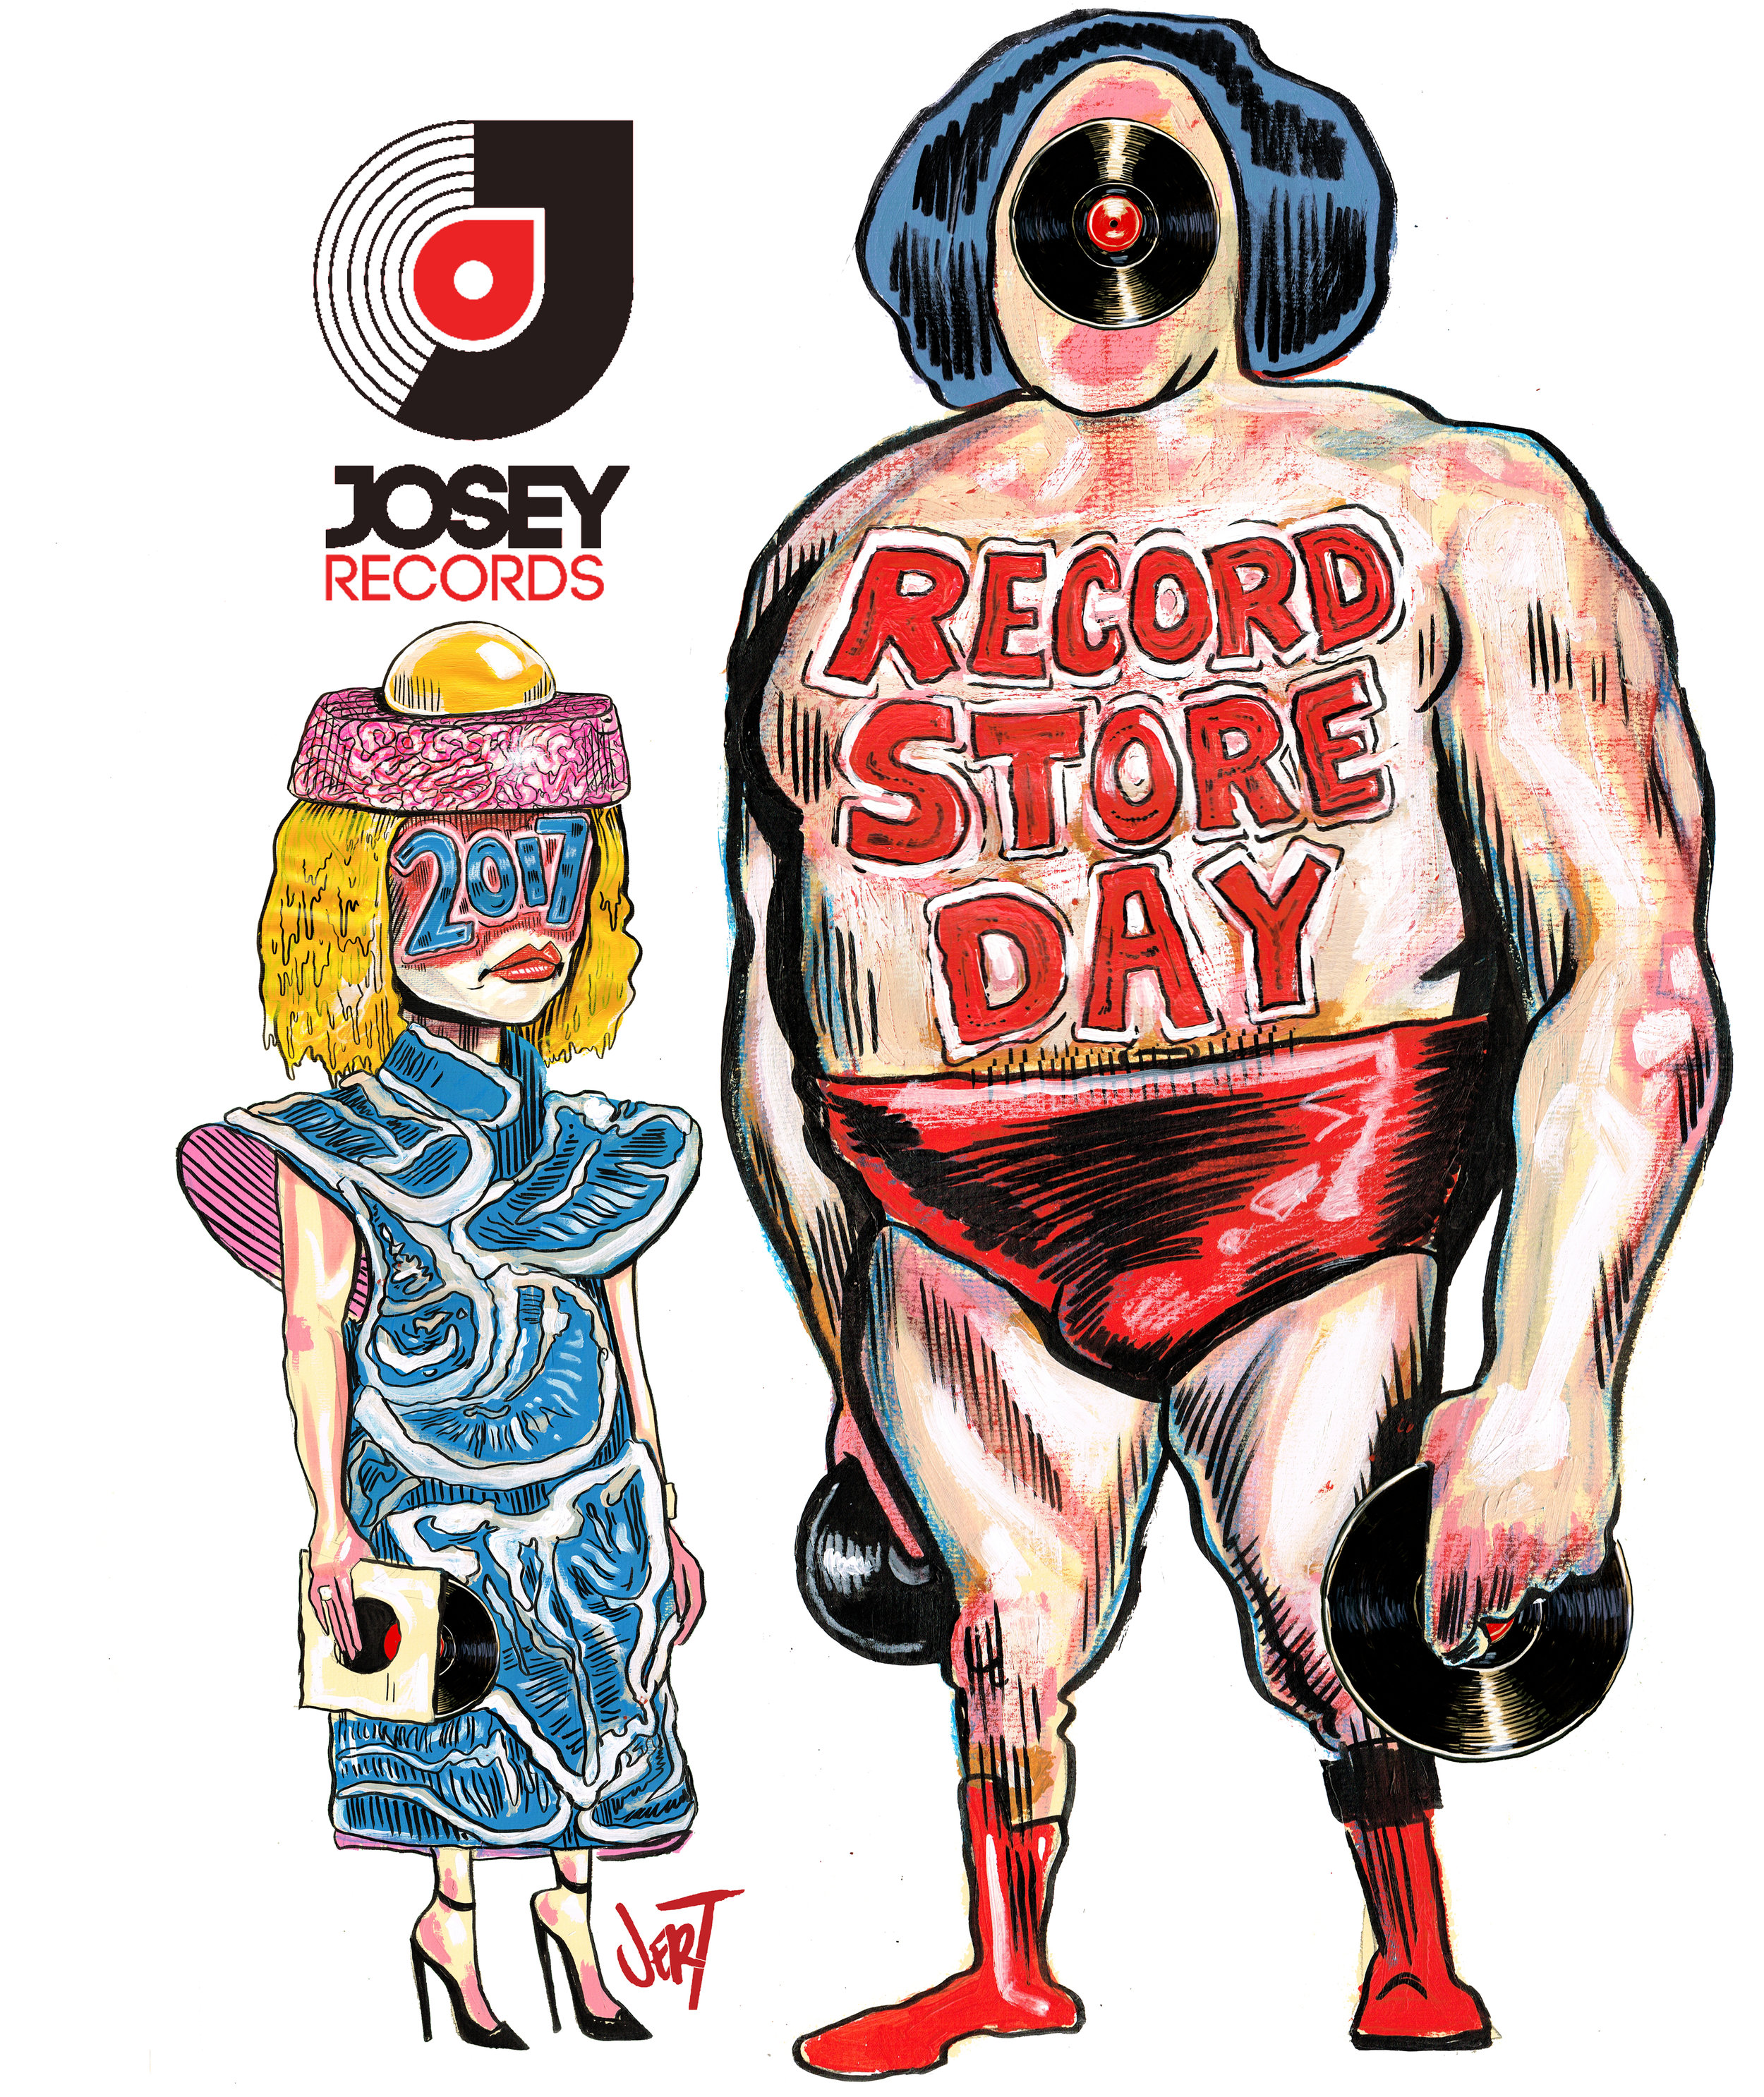 record-store-day-2017-josey.jpg